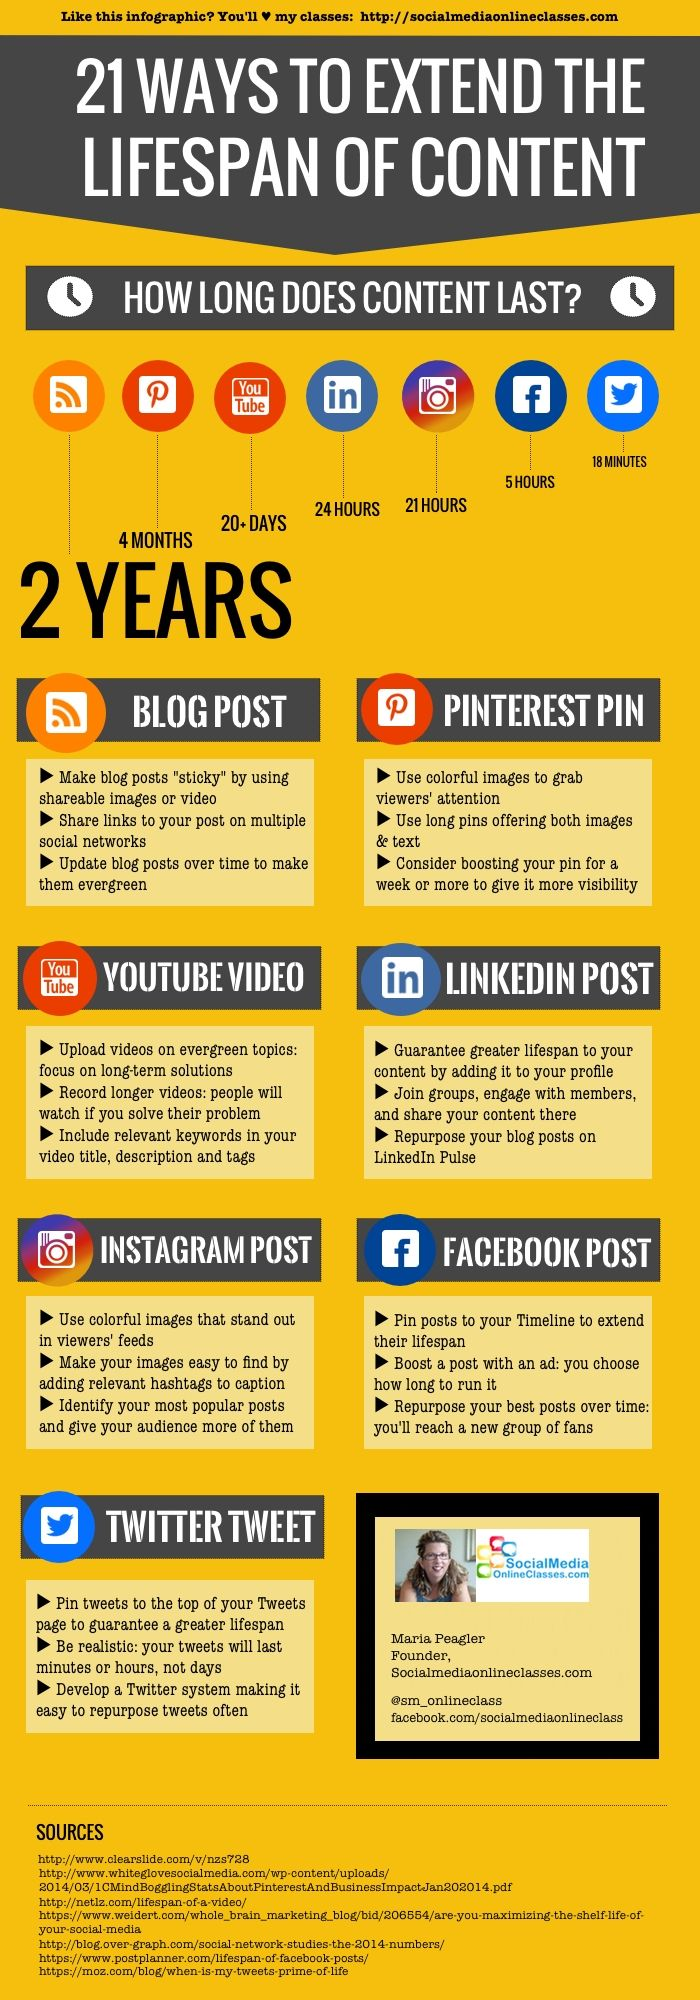 How to extend the life of your content, from blog posts to tweets.  Content can last 18 minutes or 5 years, depending on where you post it, what you include, and more. This article includes case studies, examples, and tips to squeeze every drop of life from your content marketing strategy.  Download your copy by clicking on the infographic!